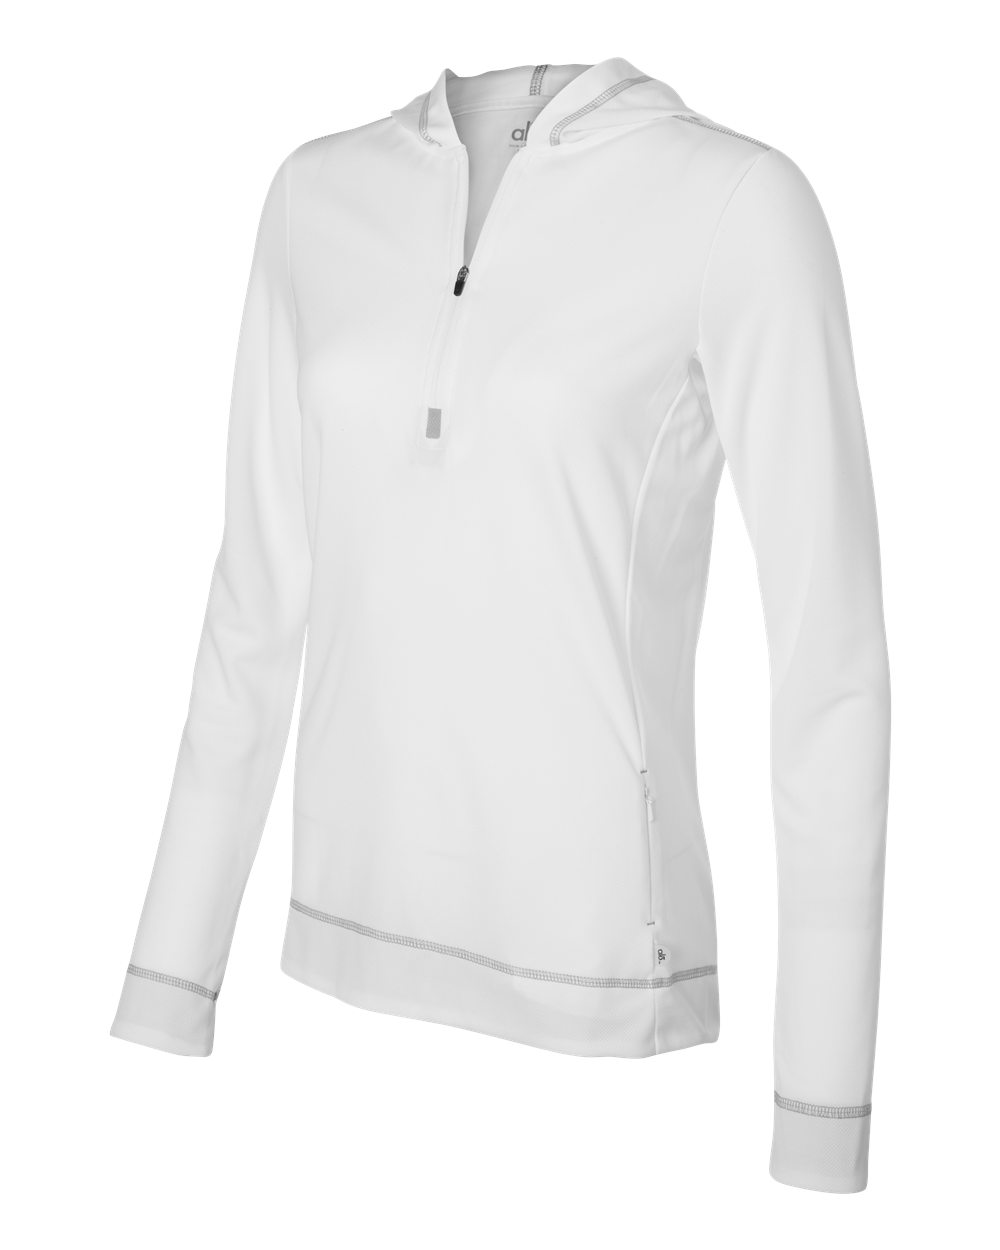 Alo Womens Performance Half Zip Hoodie W3002 White - Grey